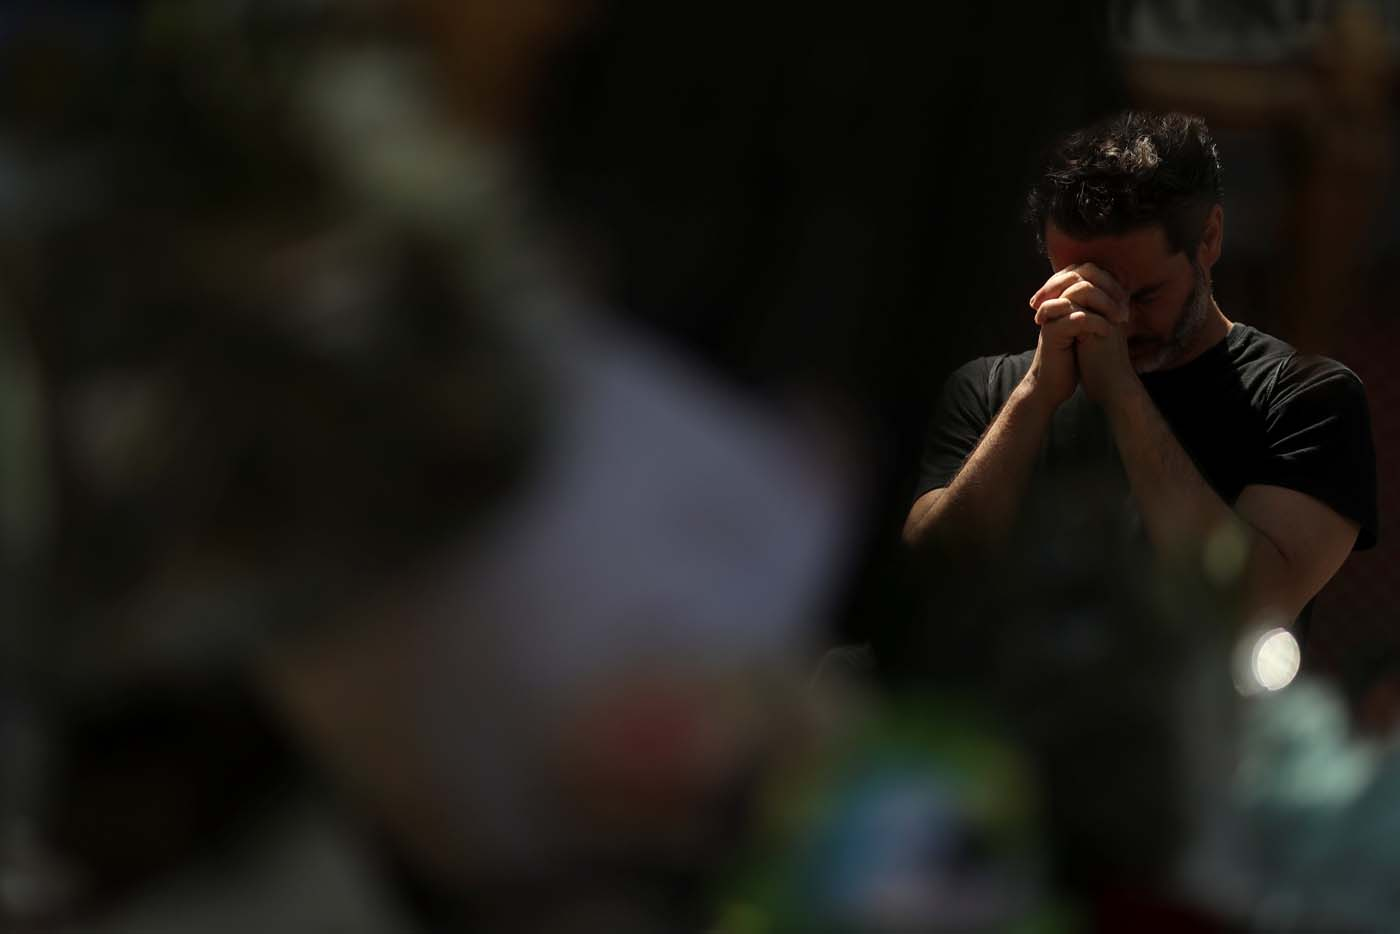 A man reacts at an impromptu memorial a day after a van crashed into pedestrians at Las Ramblas in Barcelona, Spain August 18, 2017. REUTERS/Susana Vera